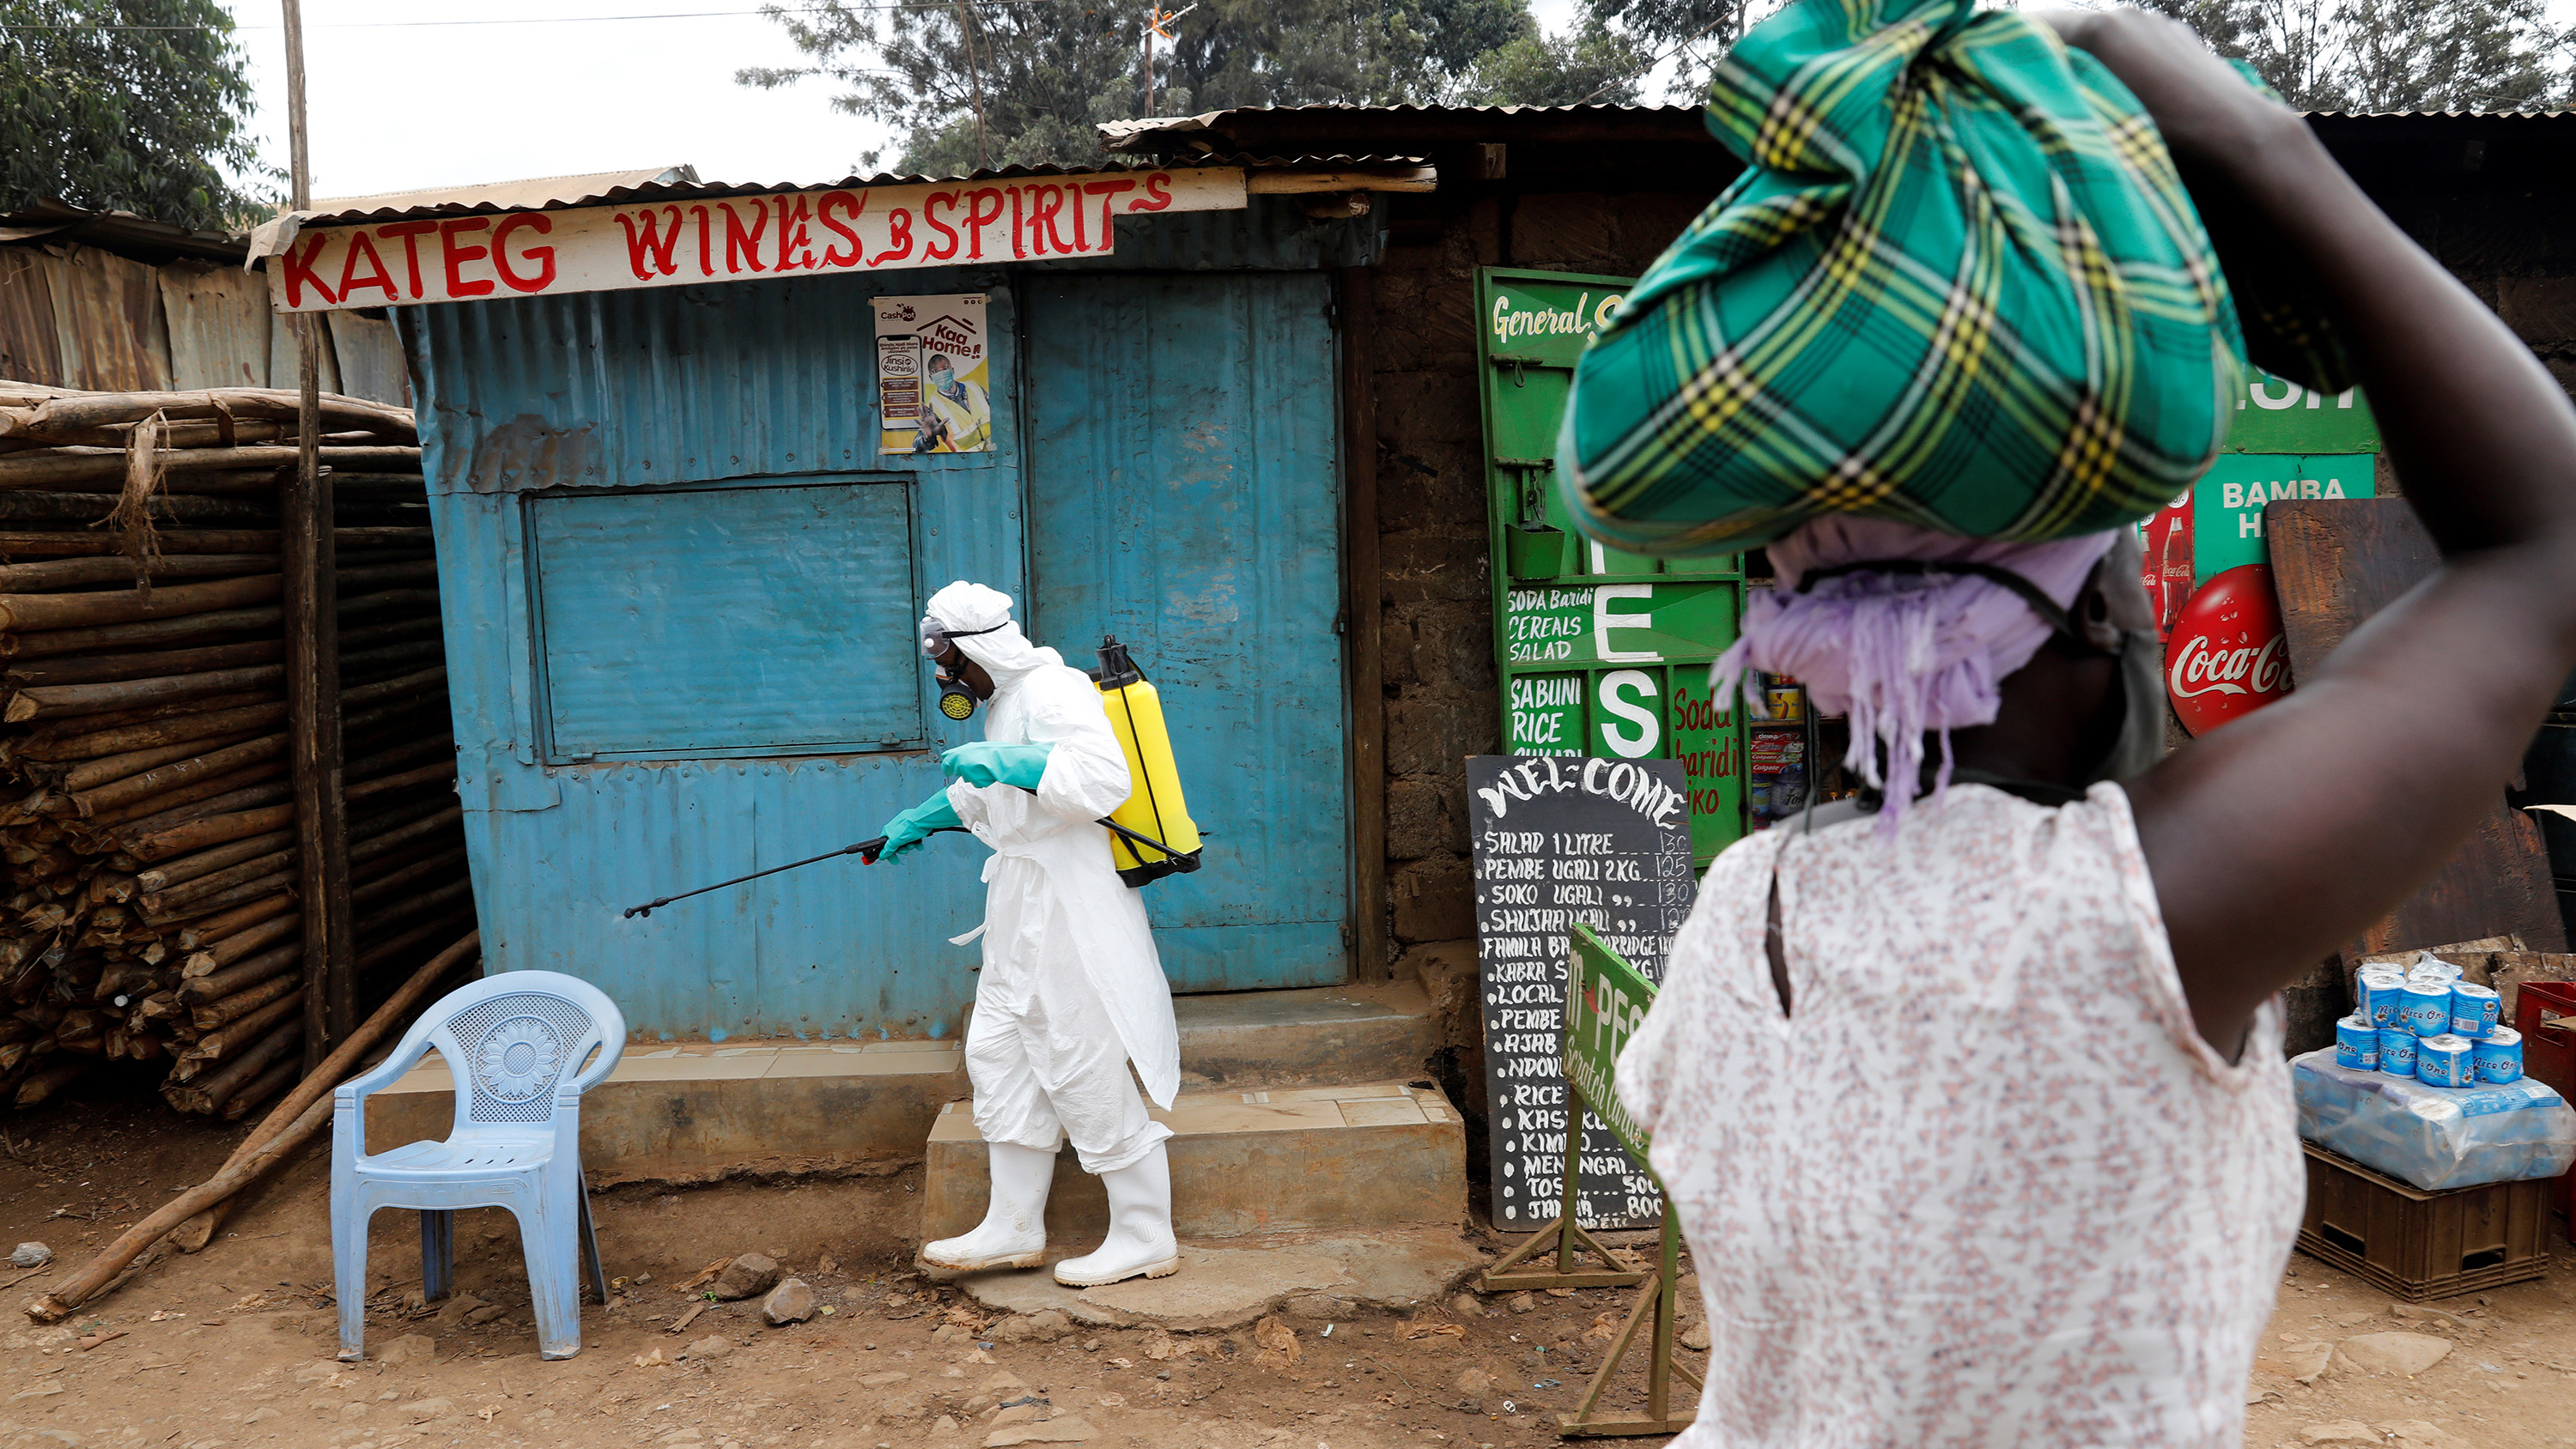 The photo shows a health worker in protective gear spraying from a bottle while a woman in the foreground looks on.